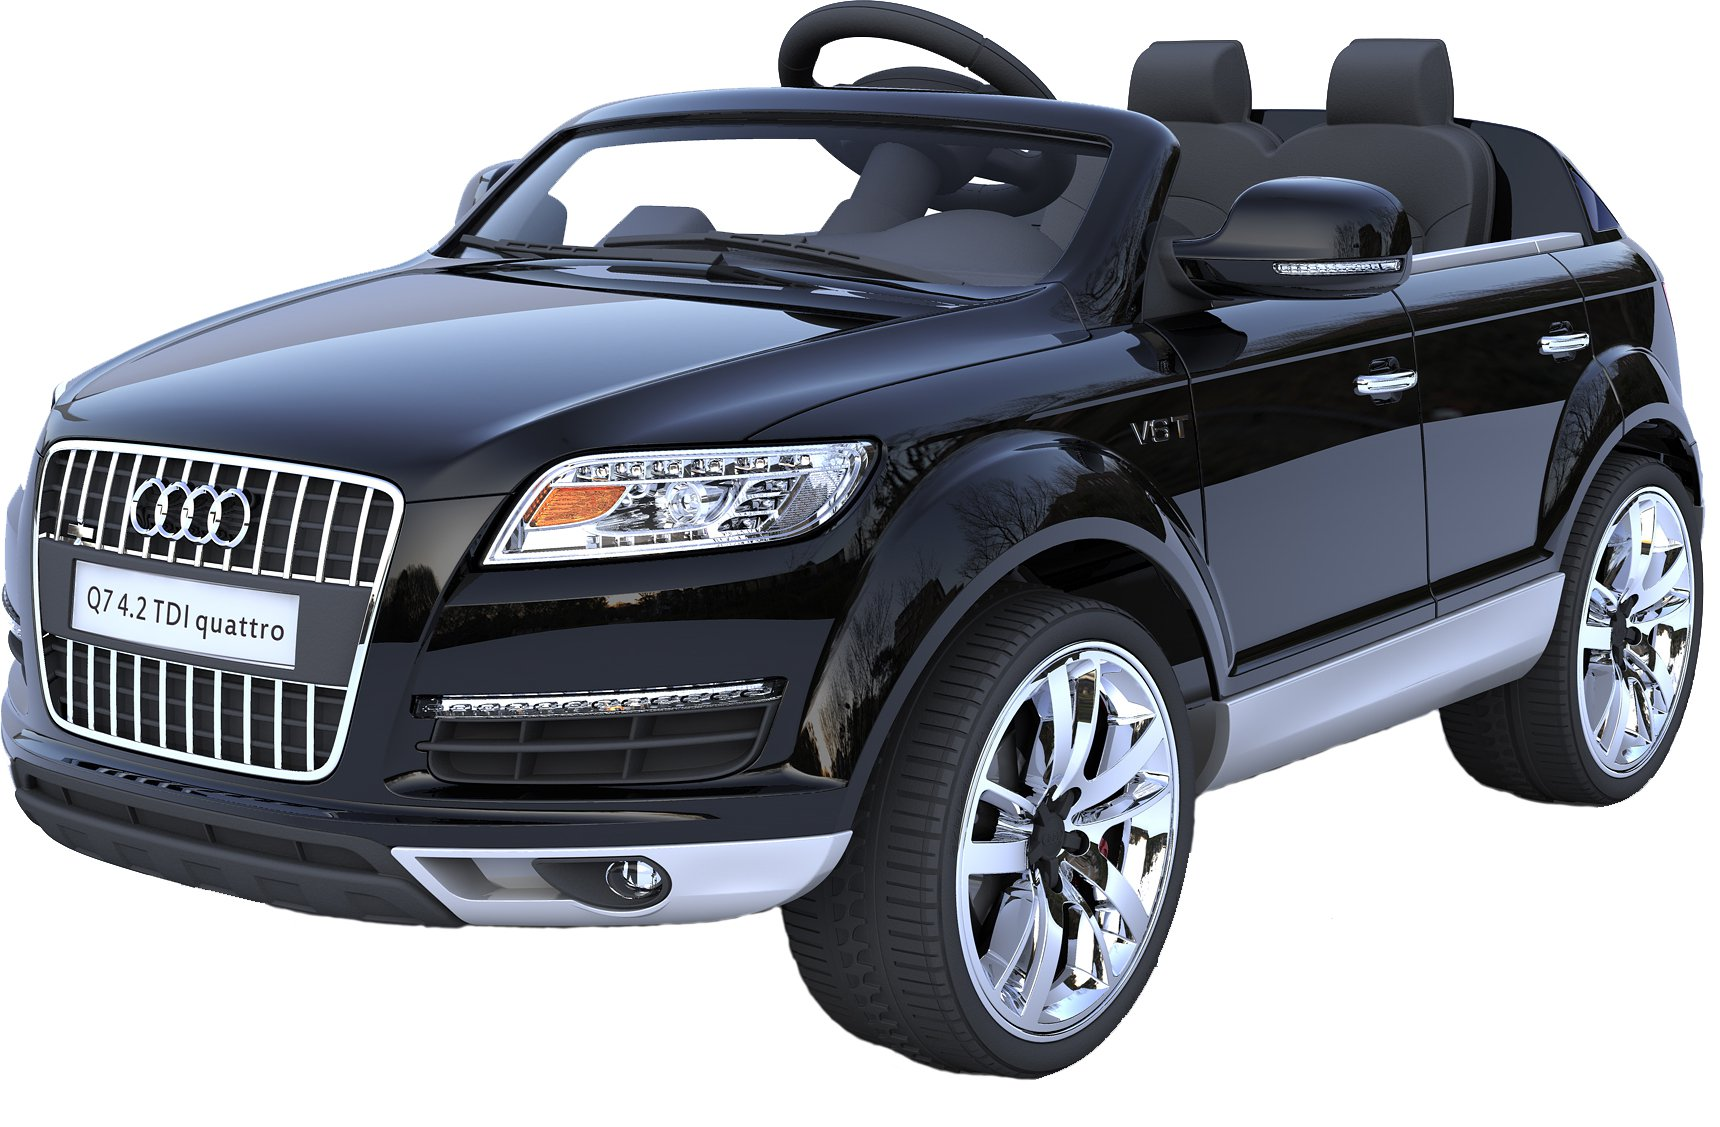 Image Gallery Of Kids Electric Cars Audi